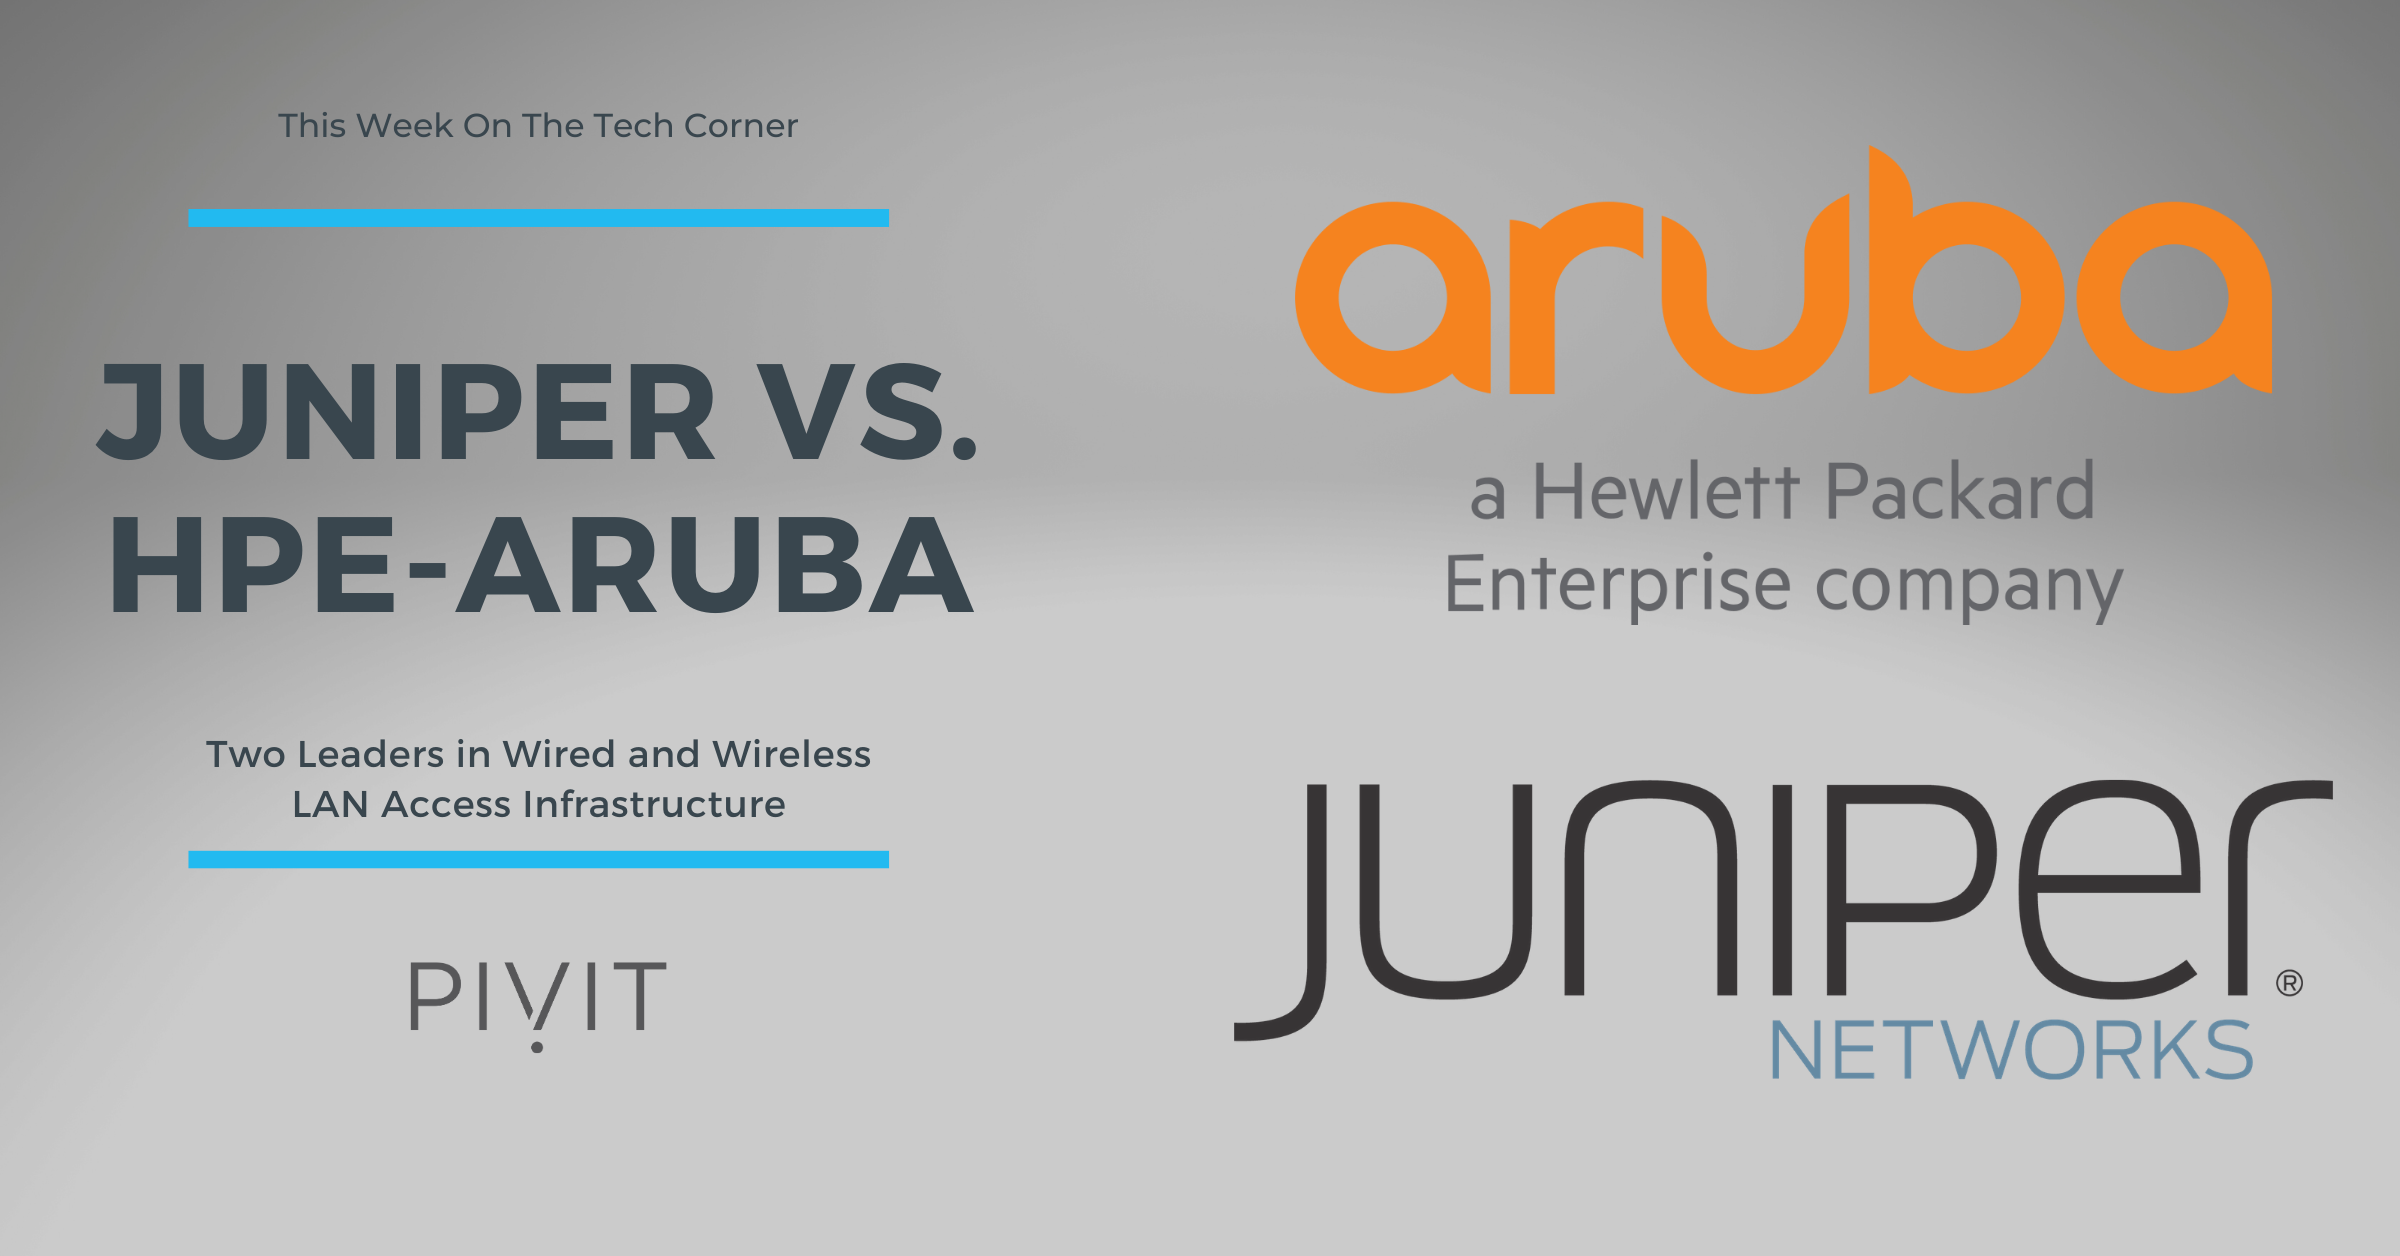 HPE-Aruba vs Juniper in Wired and Wireless LAN Access Infrastructure